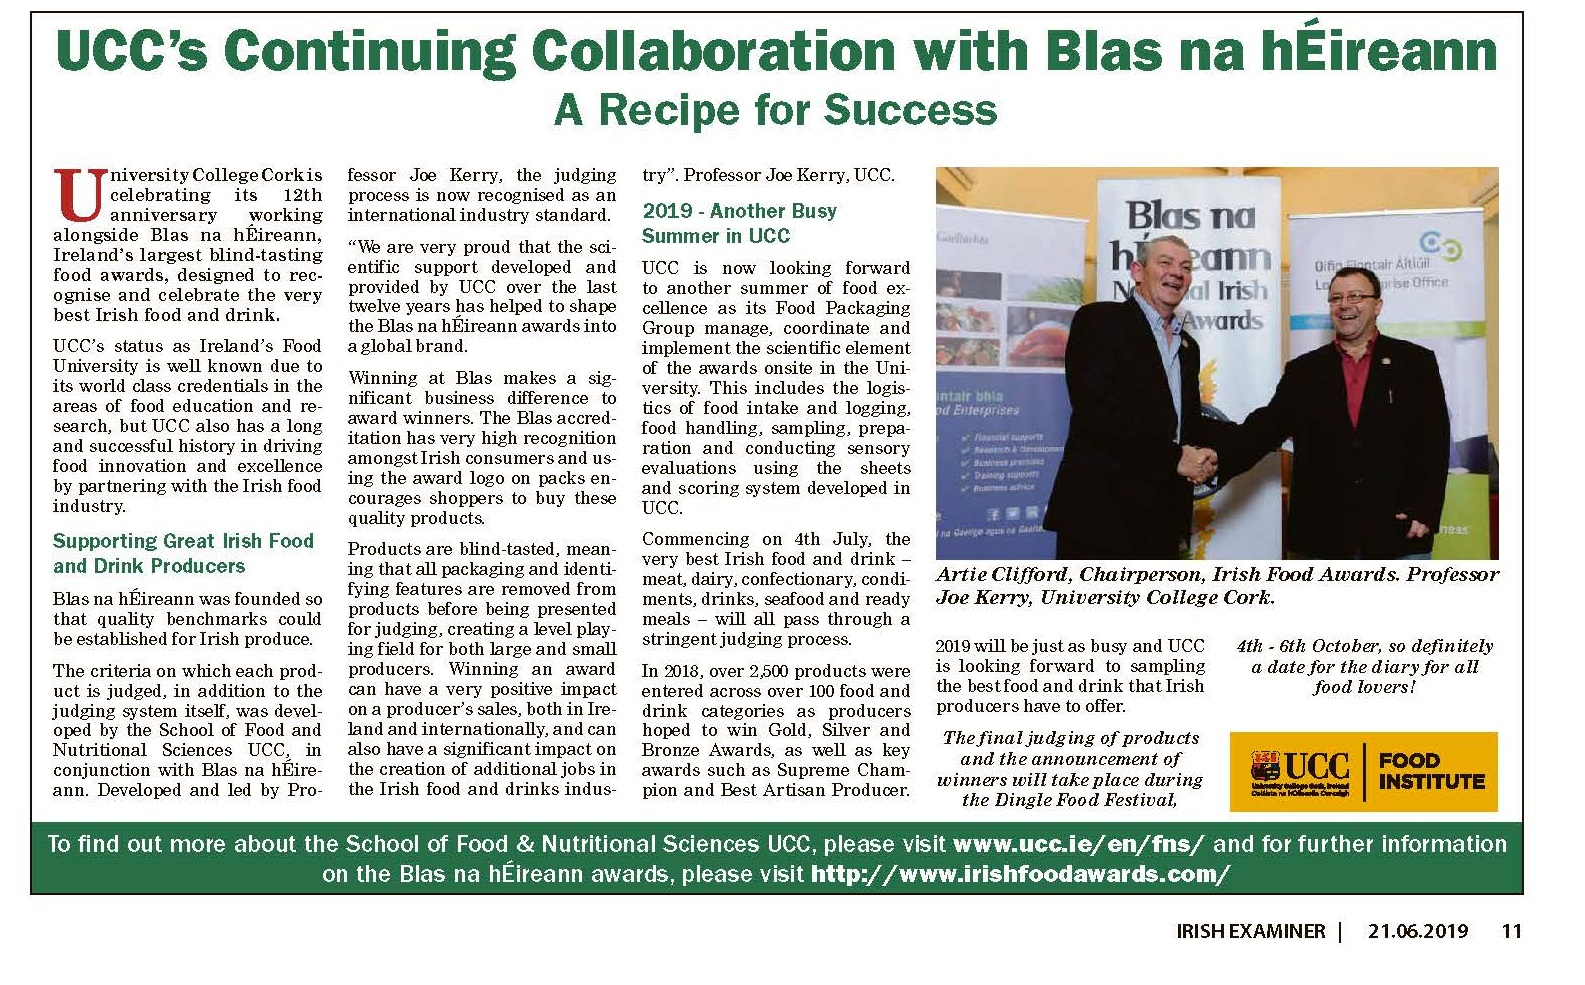 UCC's Continuing Collaboration with Blas na hEireann